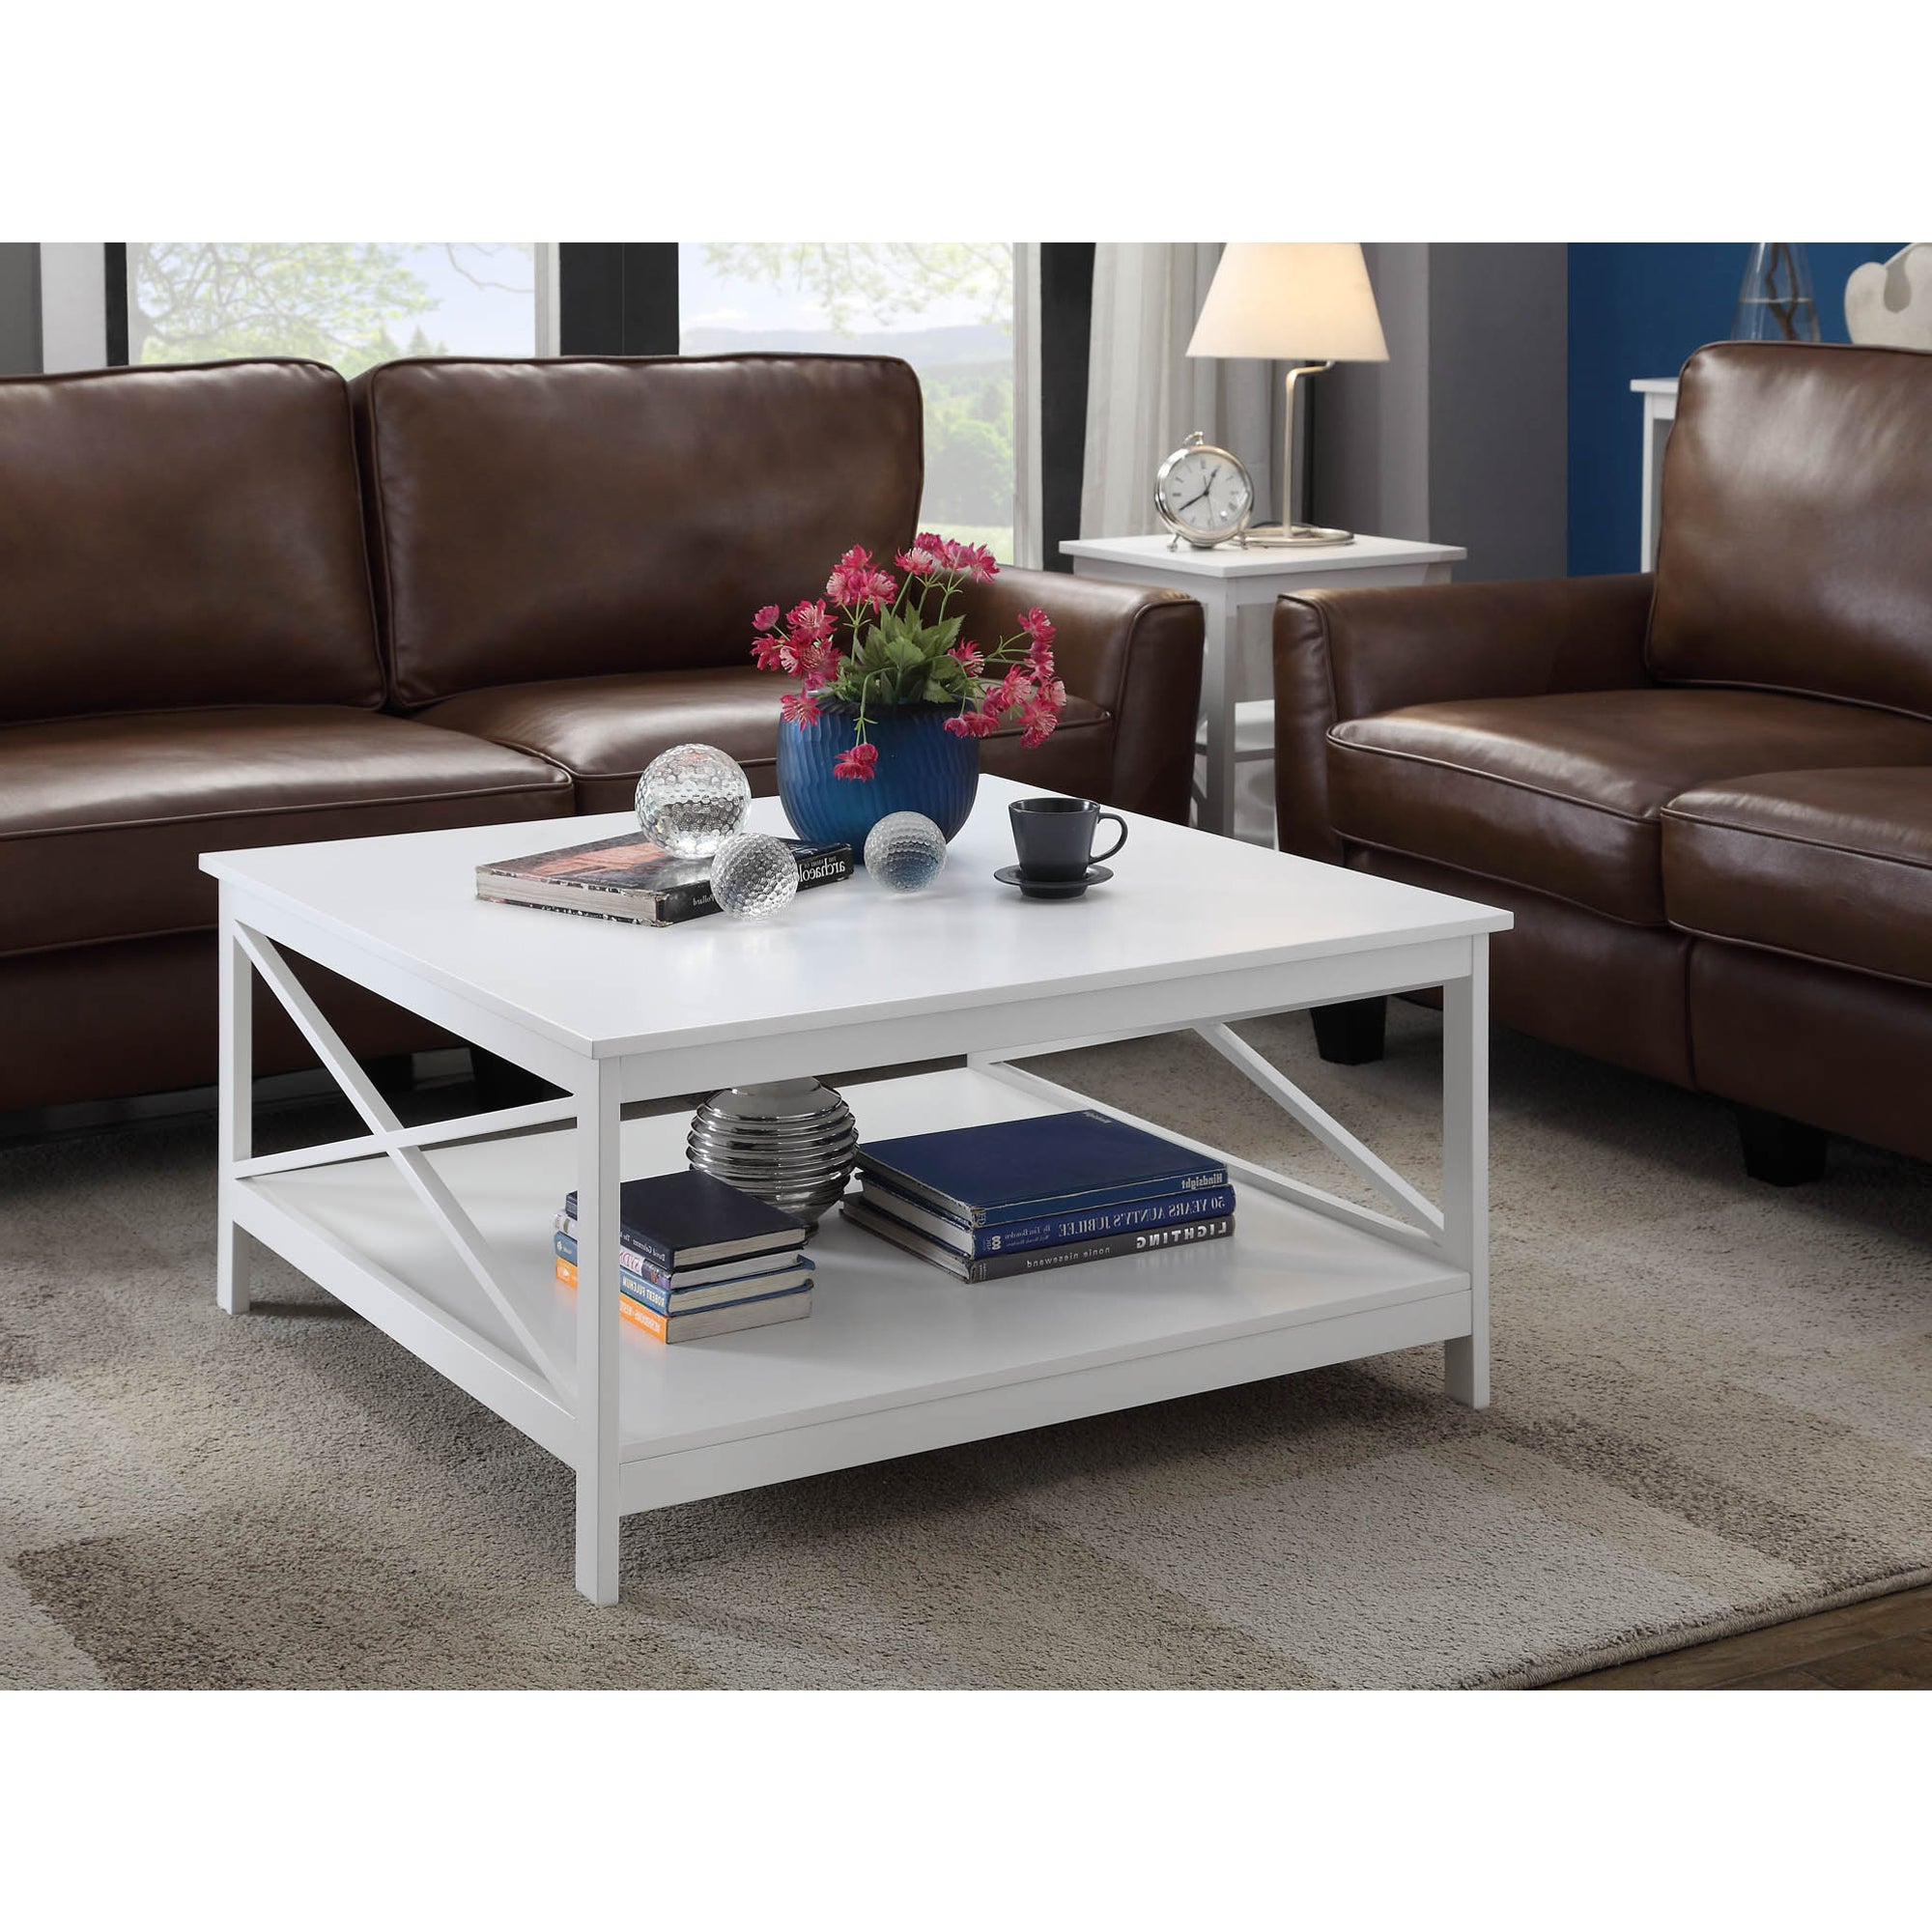 Copper Grove Coffee Tables – All About Coffee Beans With Well Liked Copper Grove Lantana Coffee Tables (View 5 of 20)